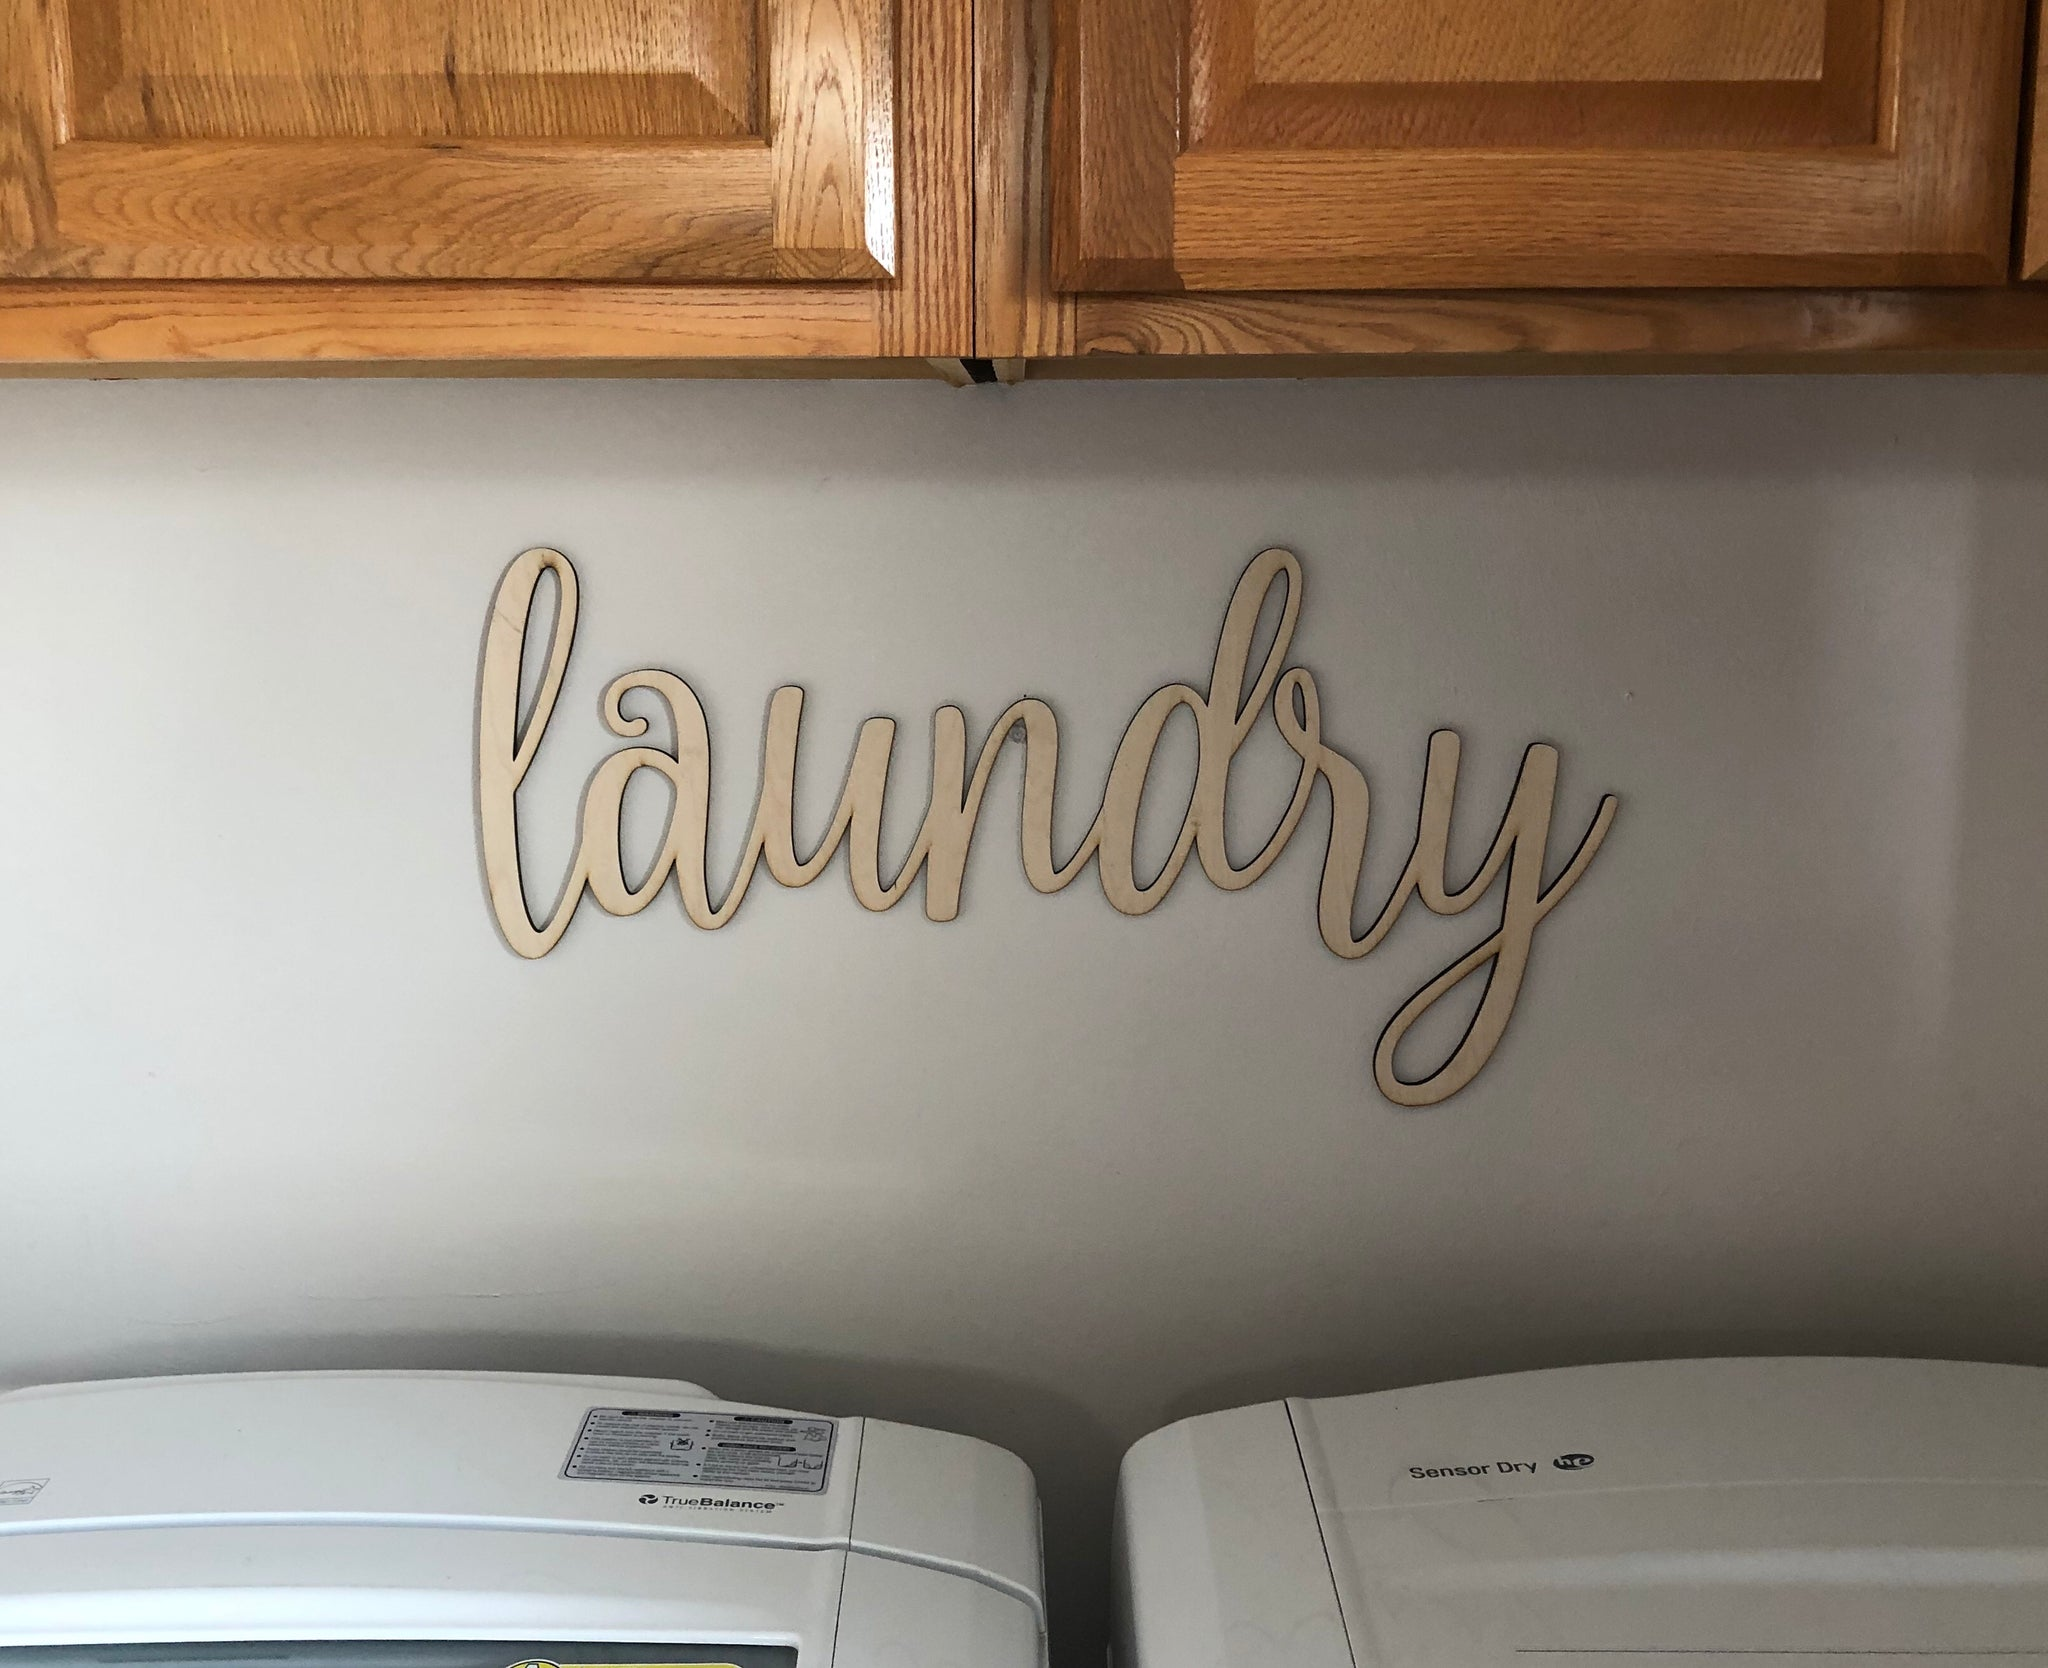 Laundry Words. Laundry Wall Decor. Wood Word Cut Out. Wooden Laundry Cut Out. Laundry Sign. - C & A Engraving and Gifts